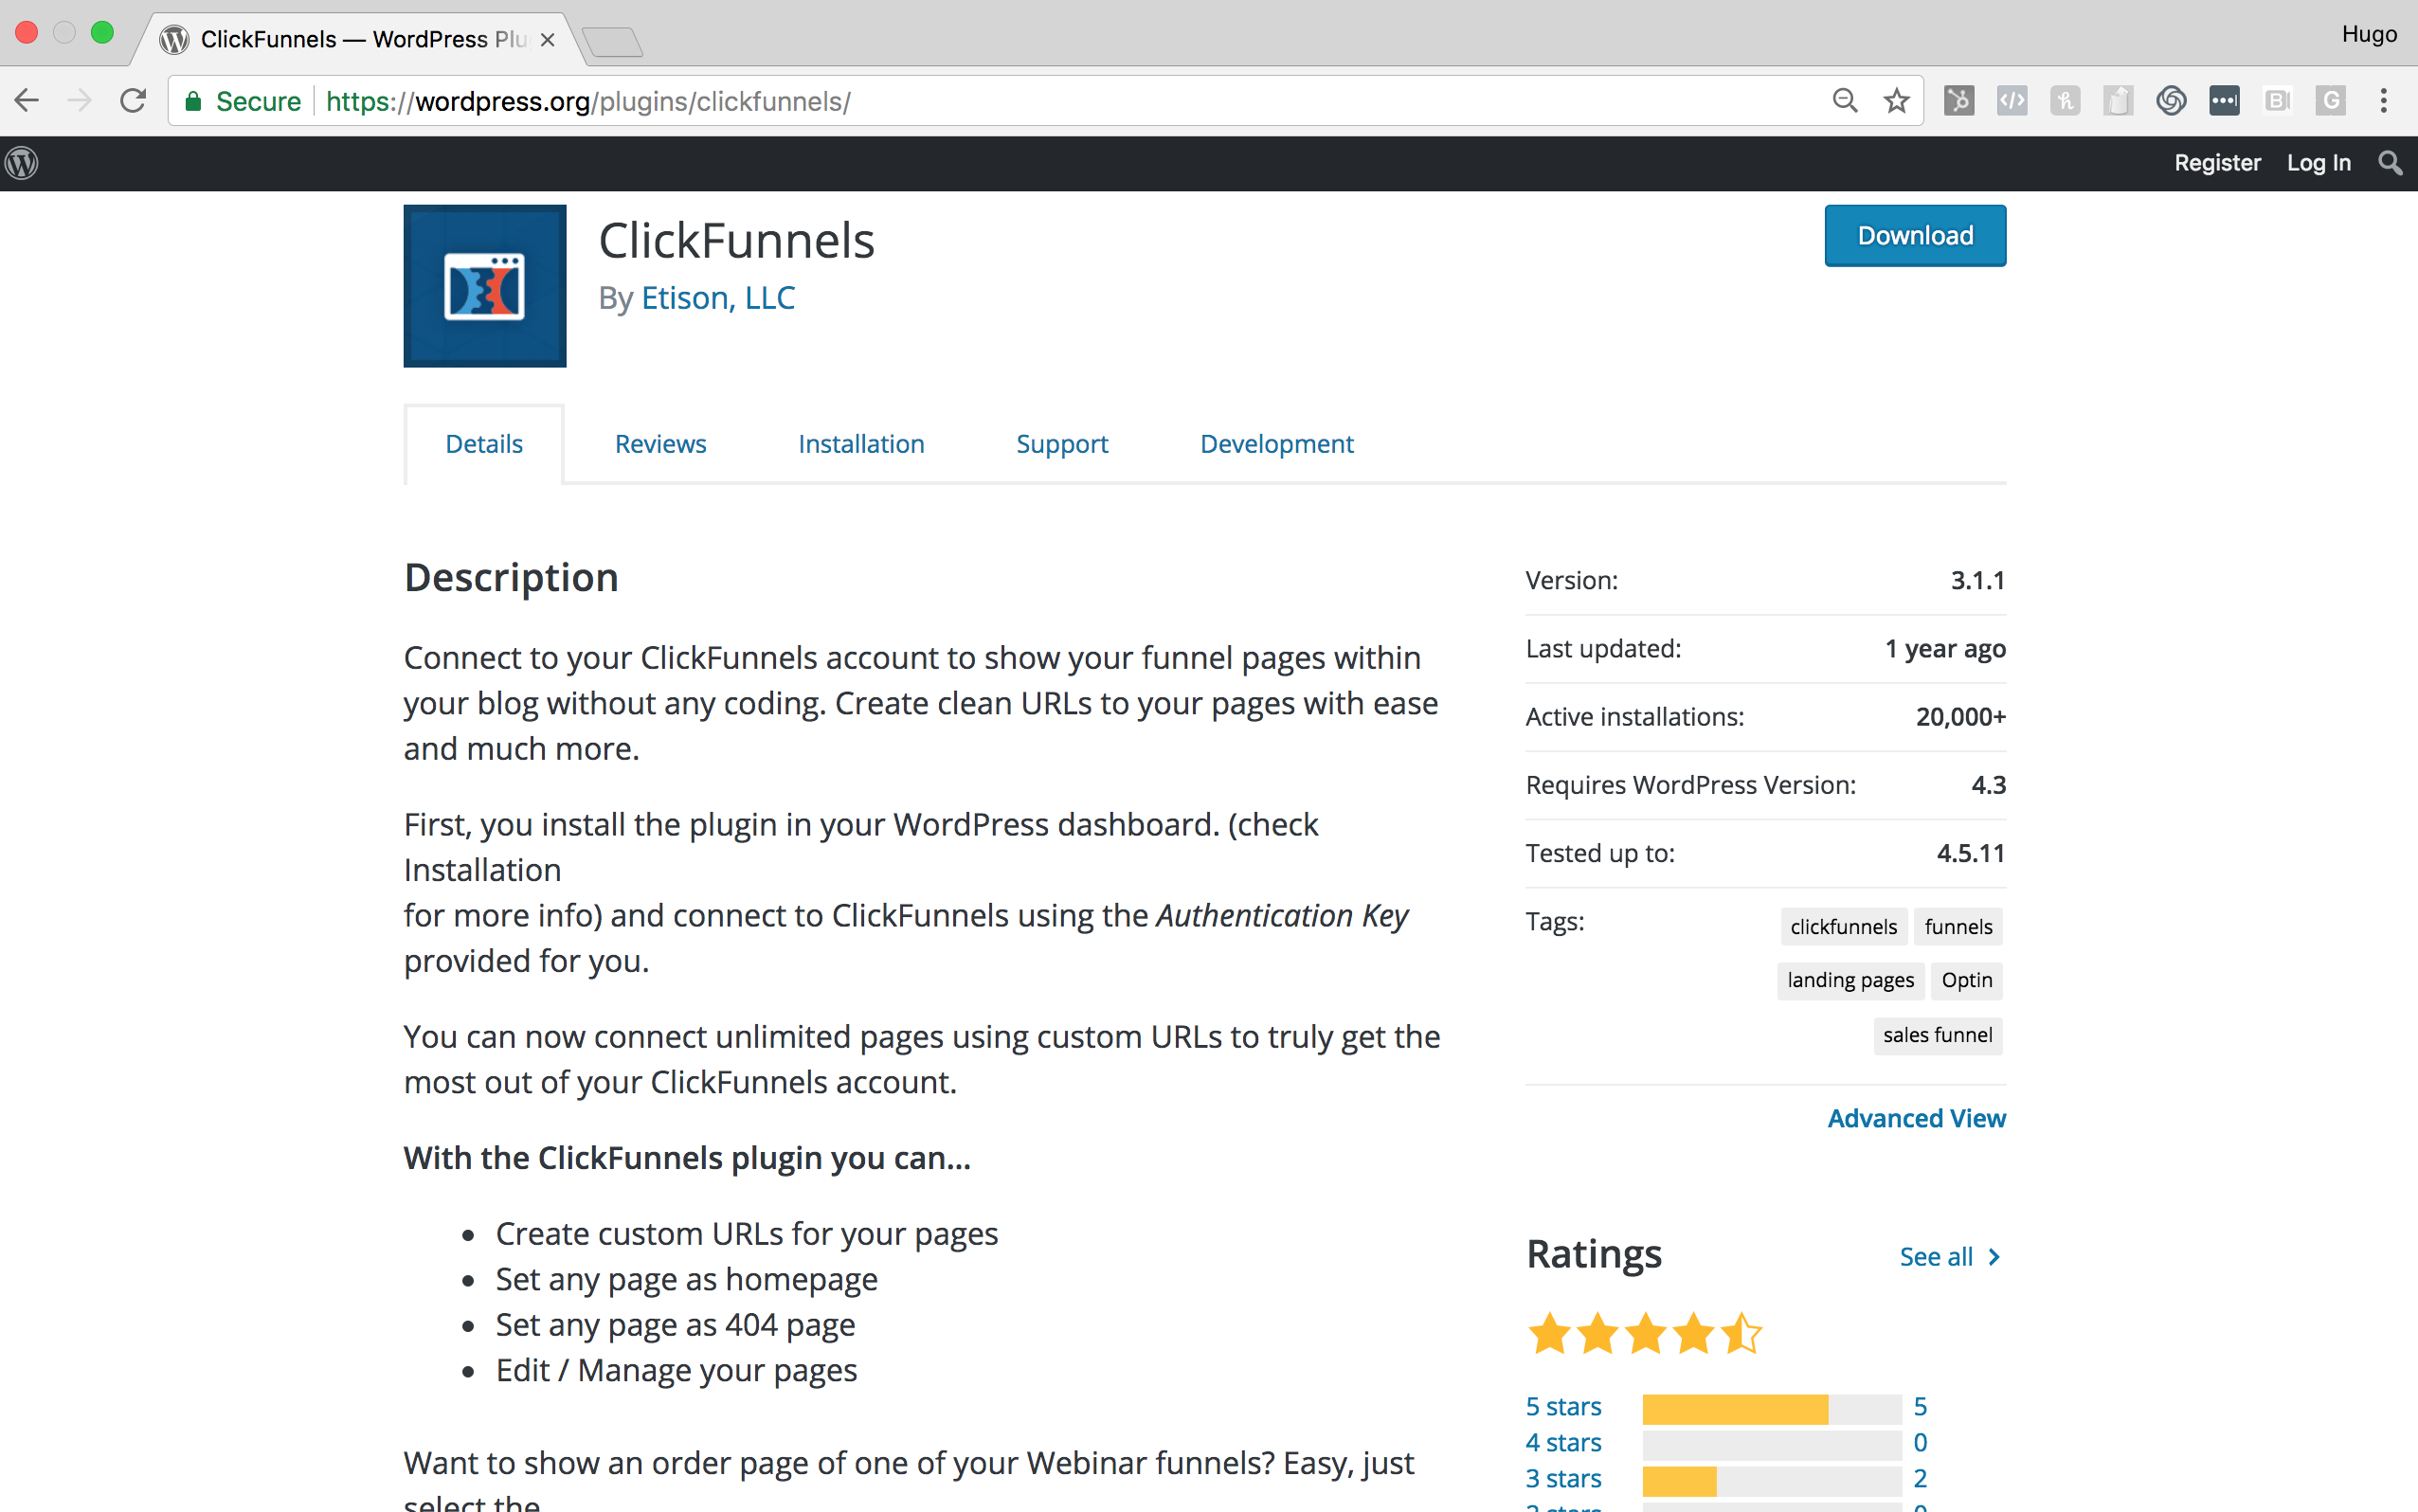 How To Download A List Of Buyers On Clickfunnels